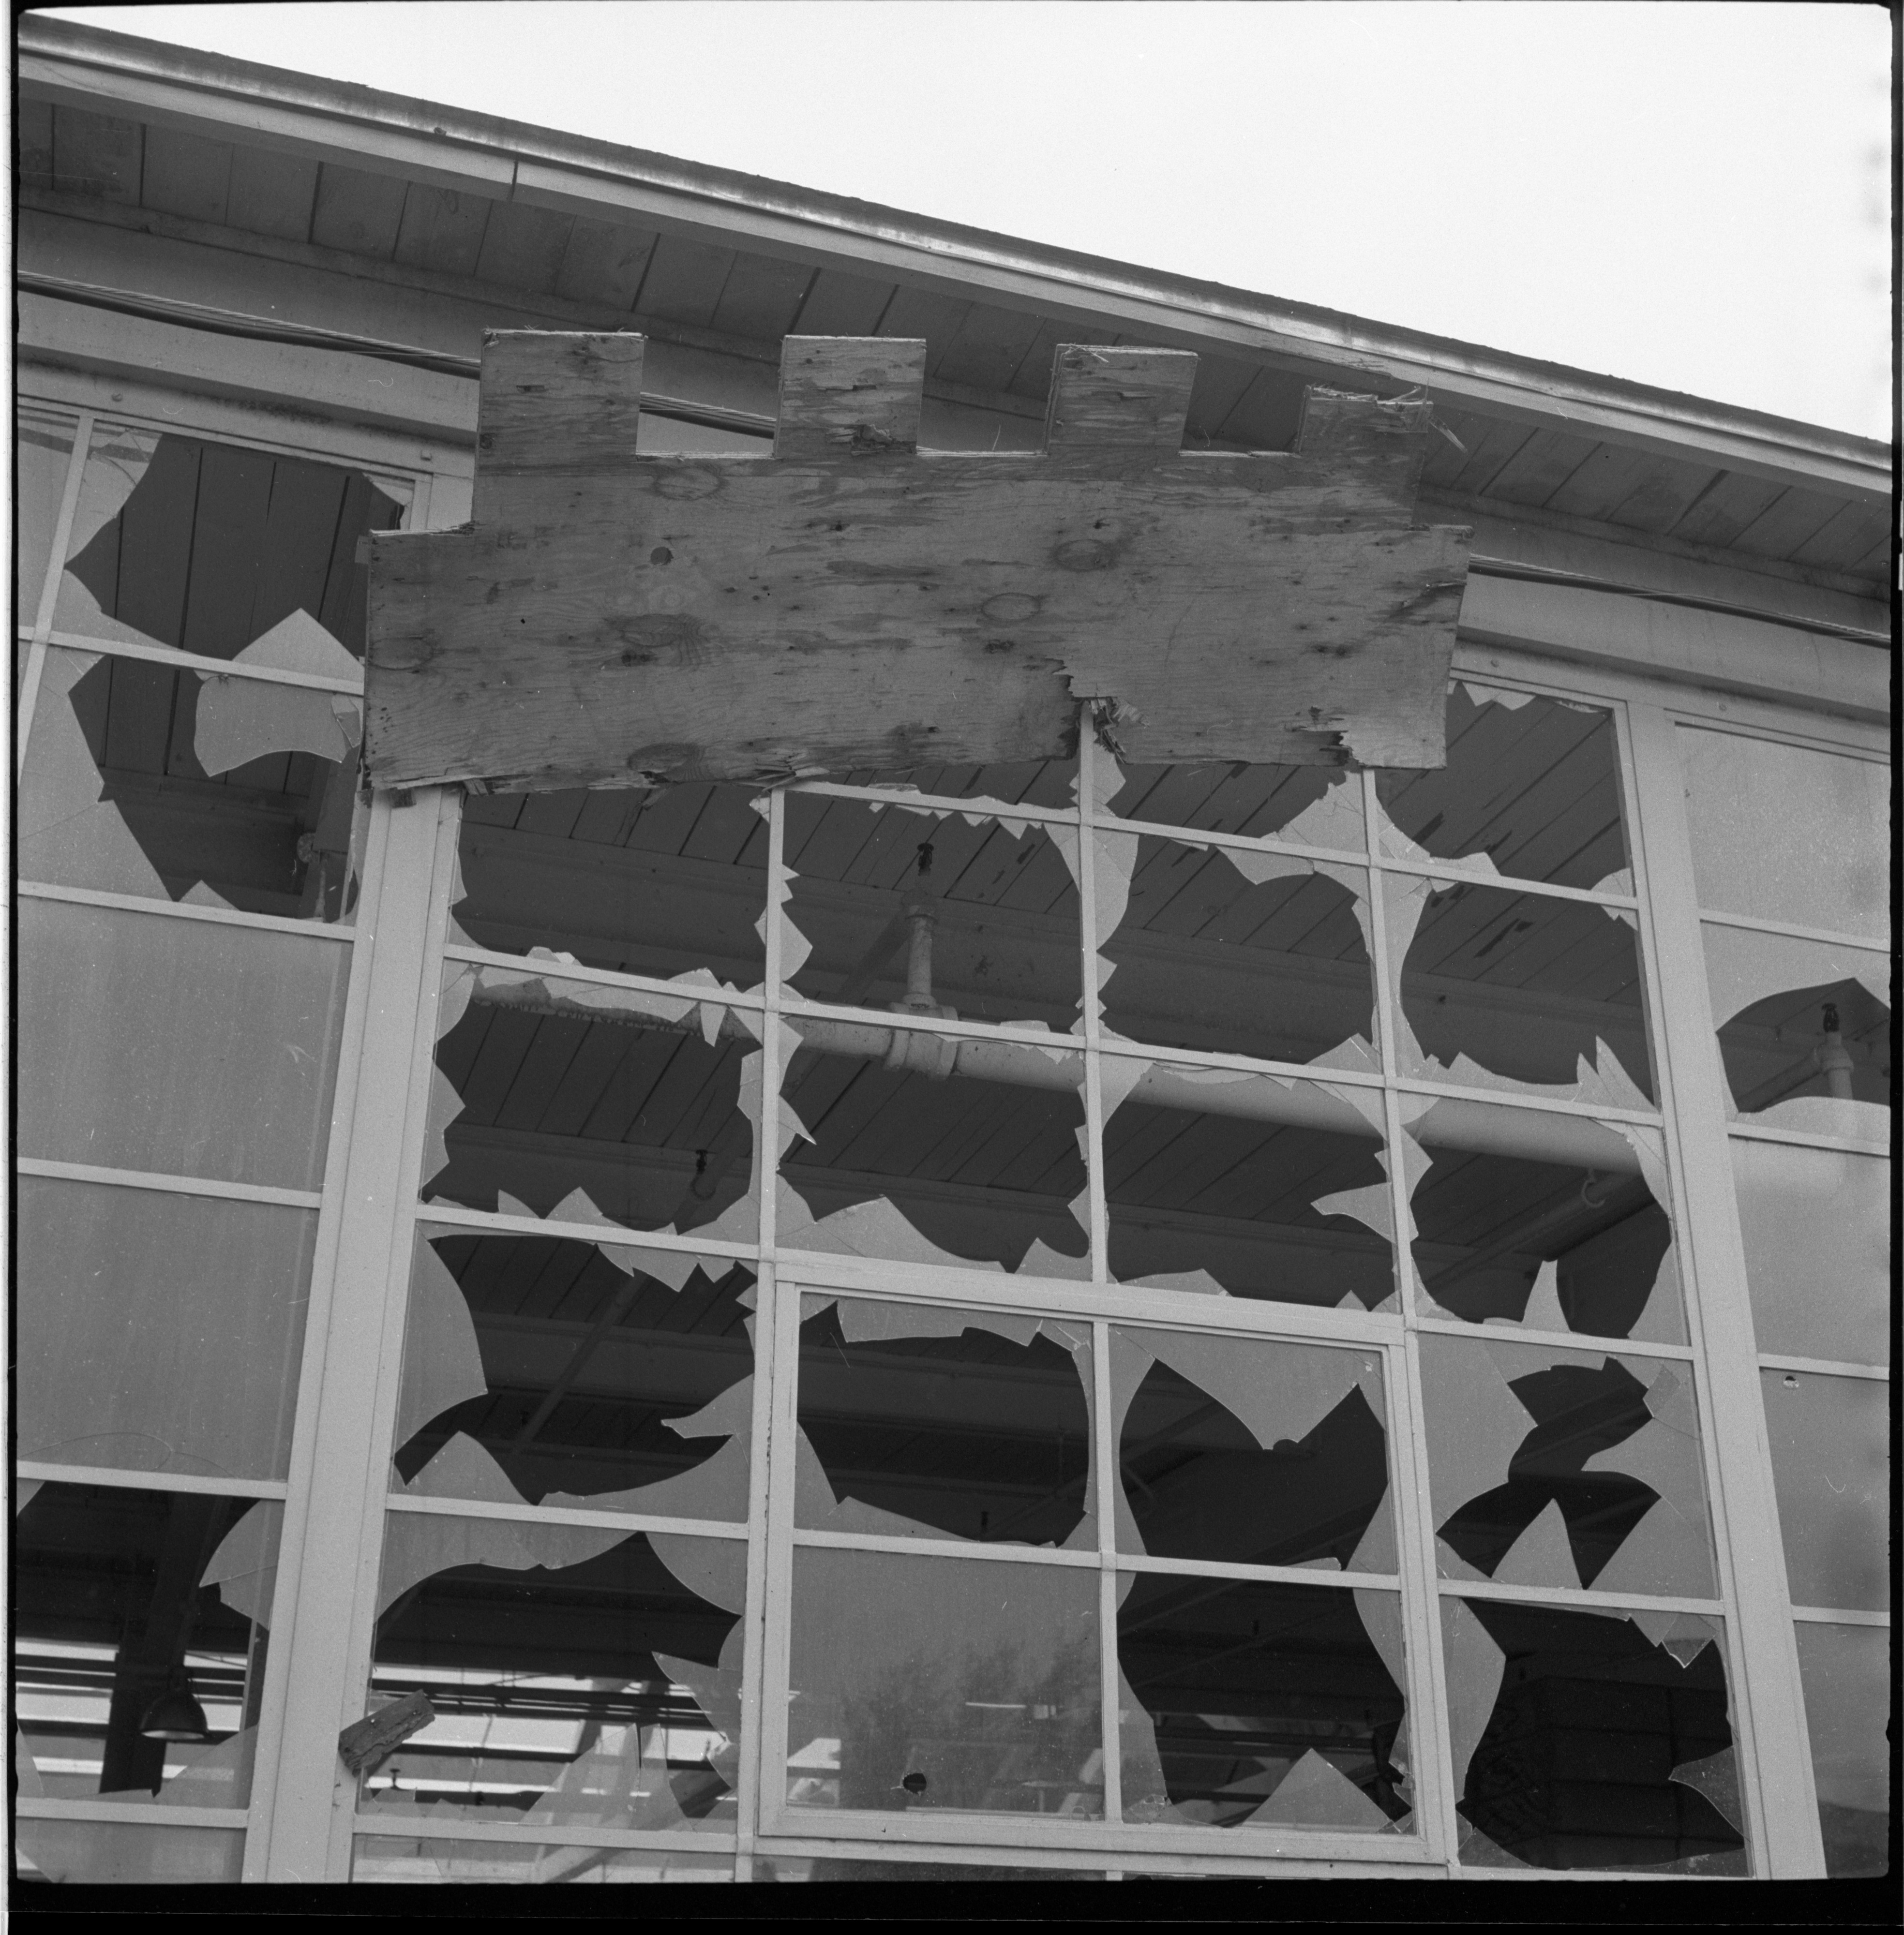 Window Panes Of Glass Shattered By Windstorm, May 1959 image